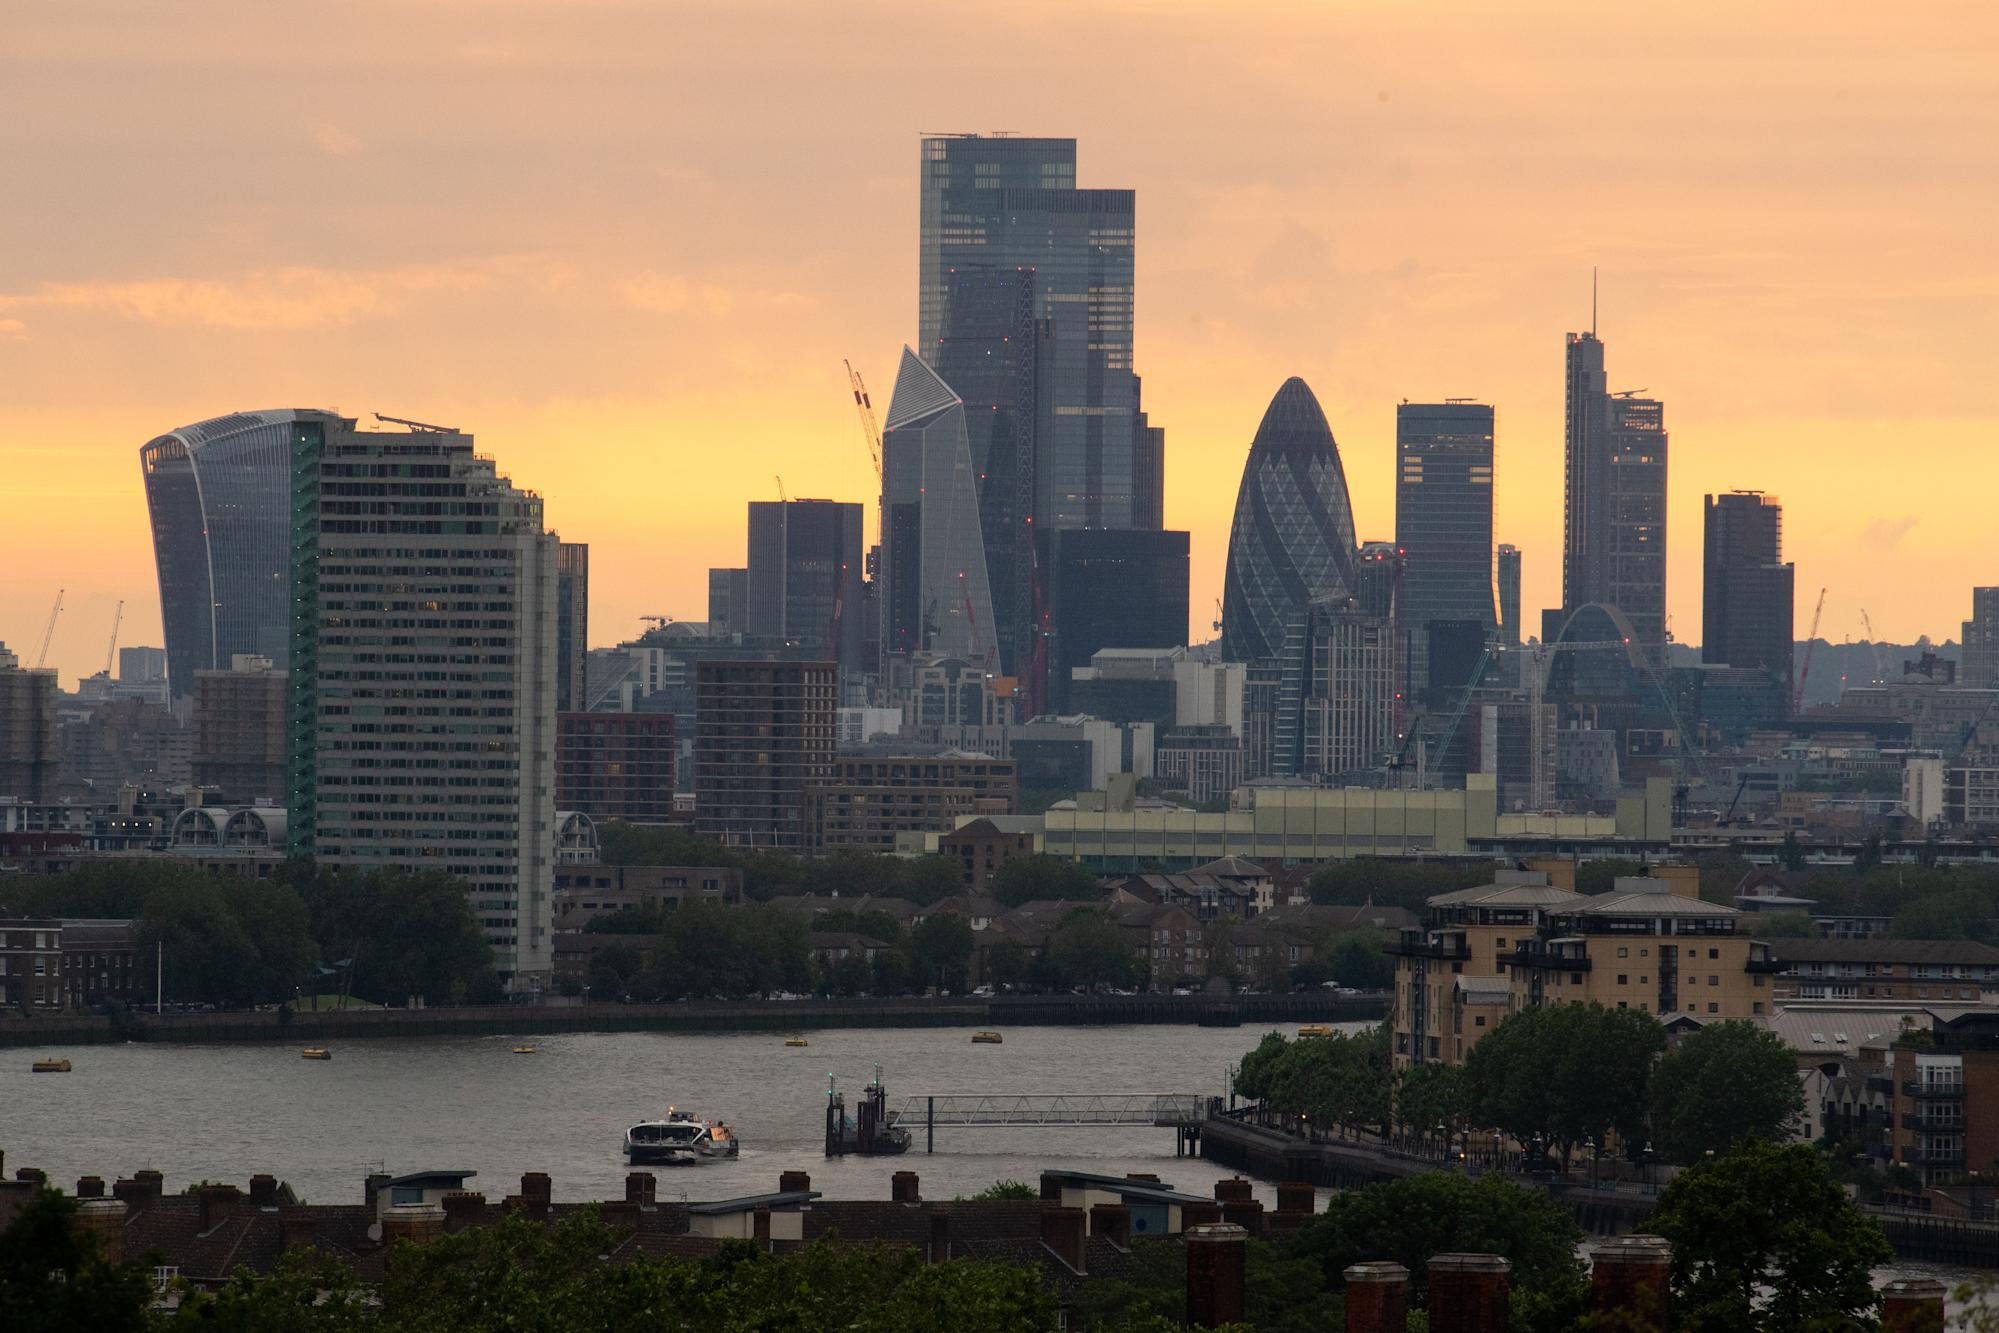 Week ahead: Bank of England rates, flash PMIs and the Fed aftermath